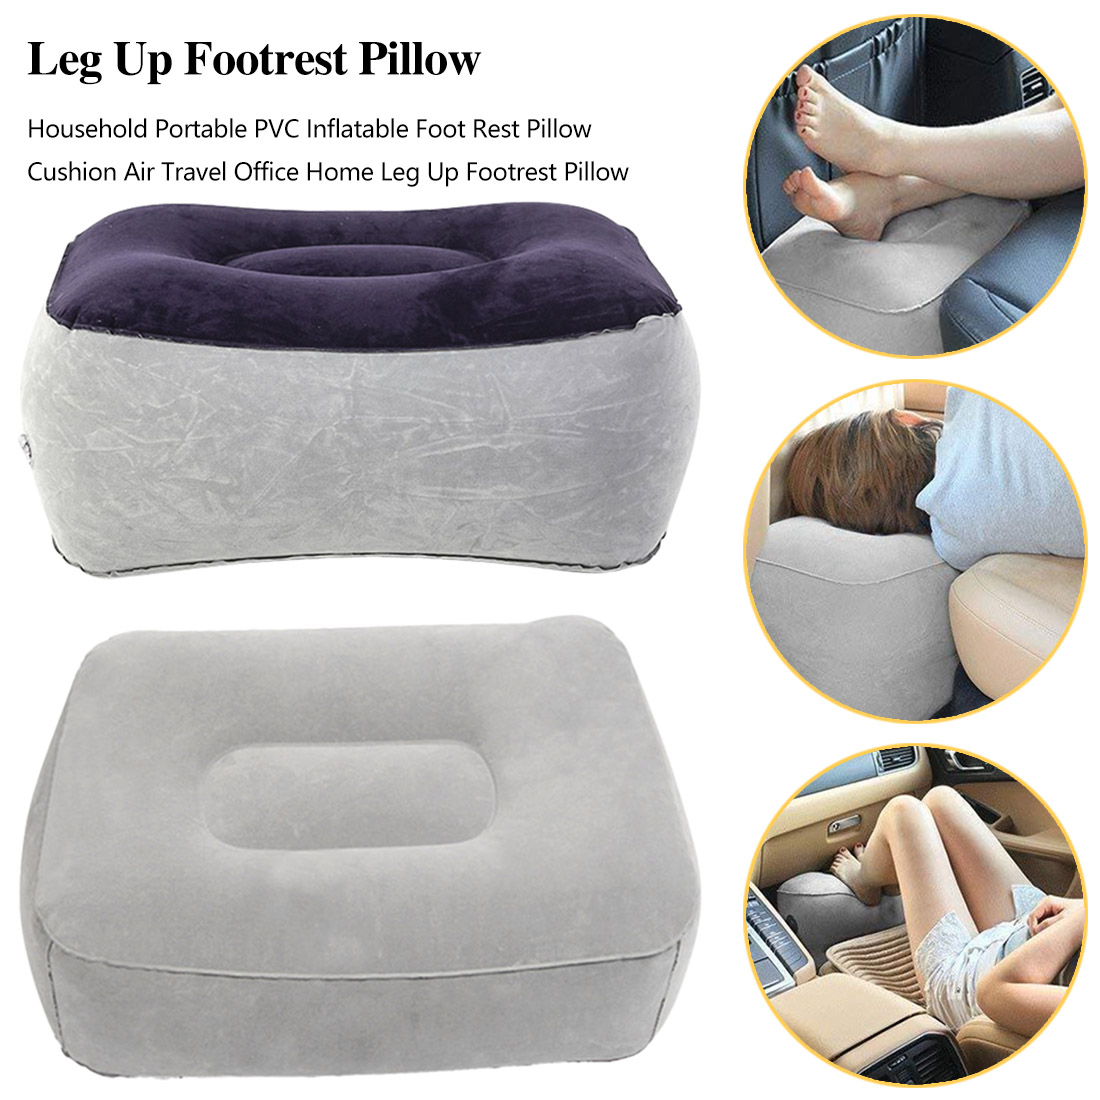 2 Colors Portable Inflatable Foot Rest Pillow Cushion PVC Air Travel Office Home Leg Up Footrest Pillow